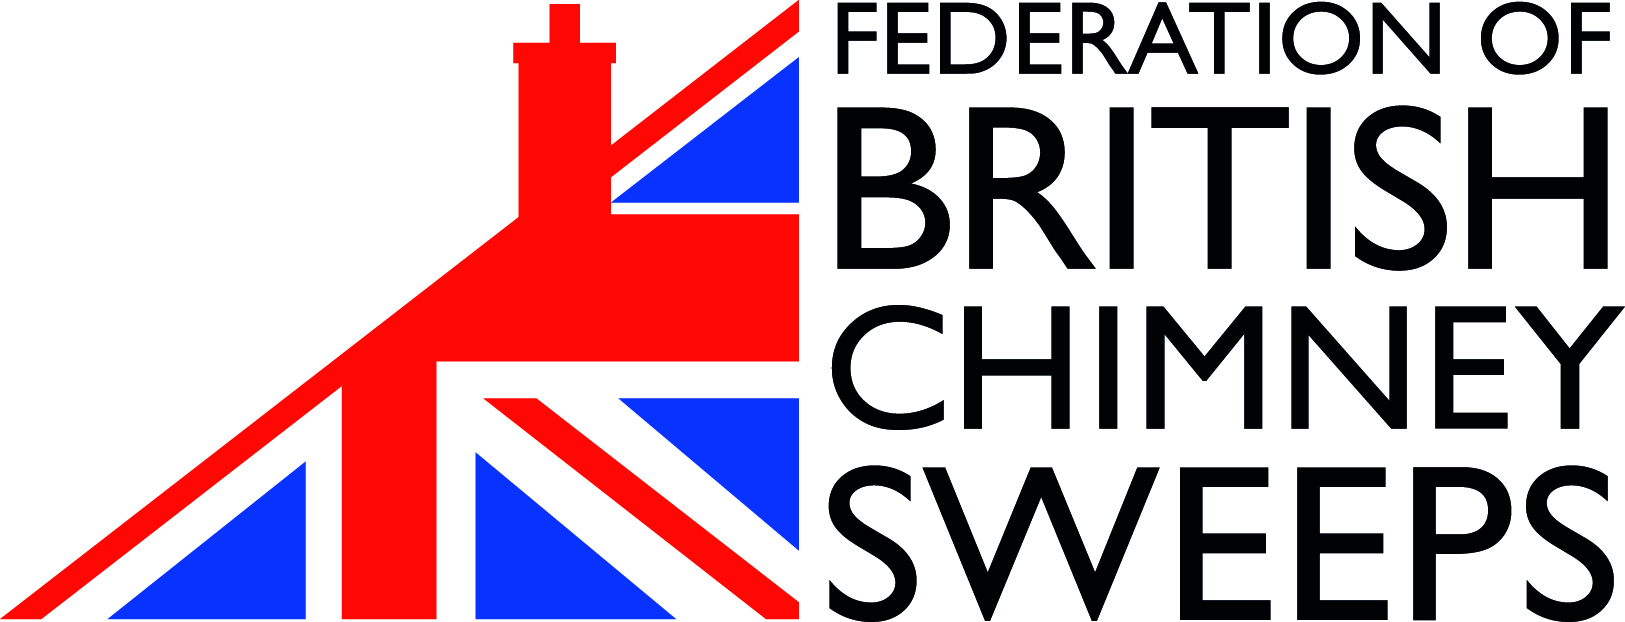 One Voice – The Federation of British Chimney Sweeps